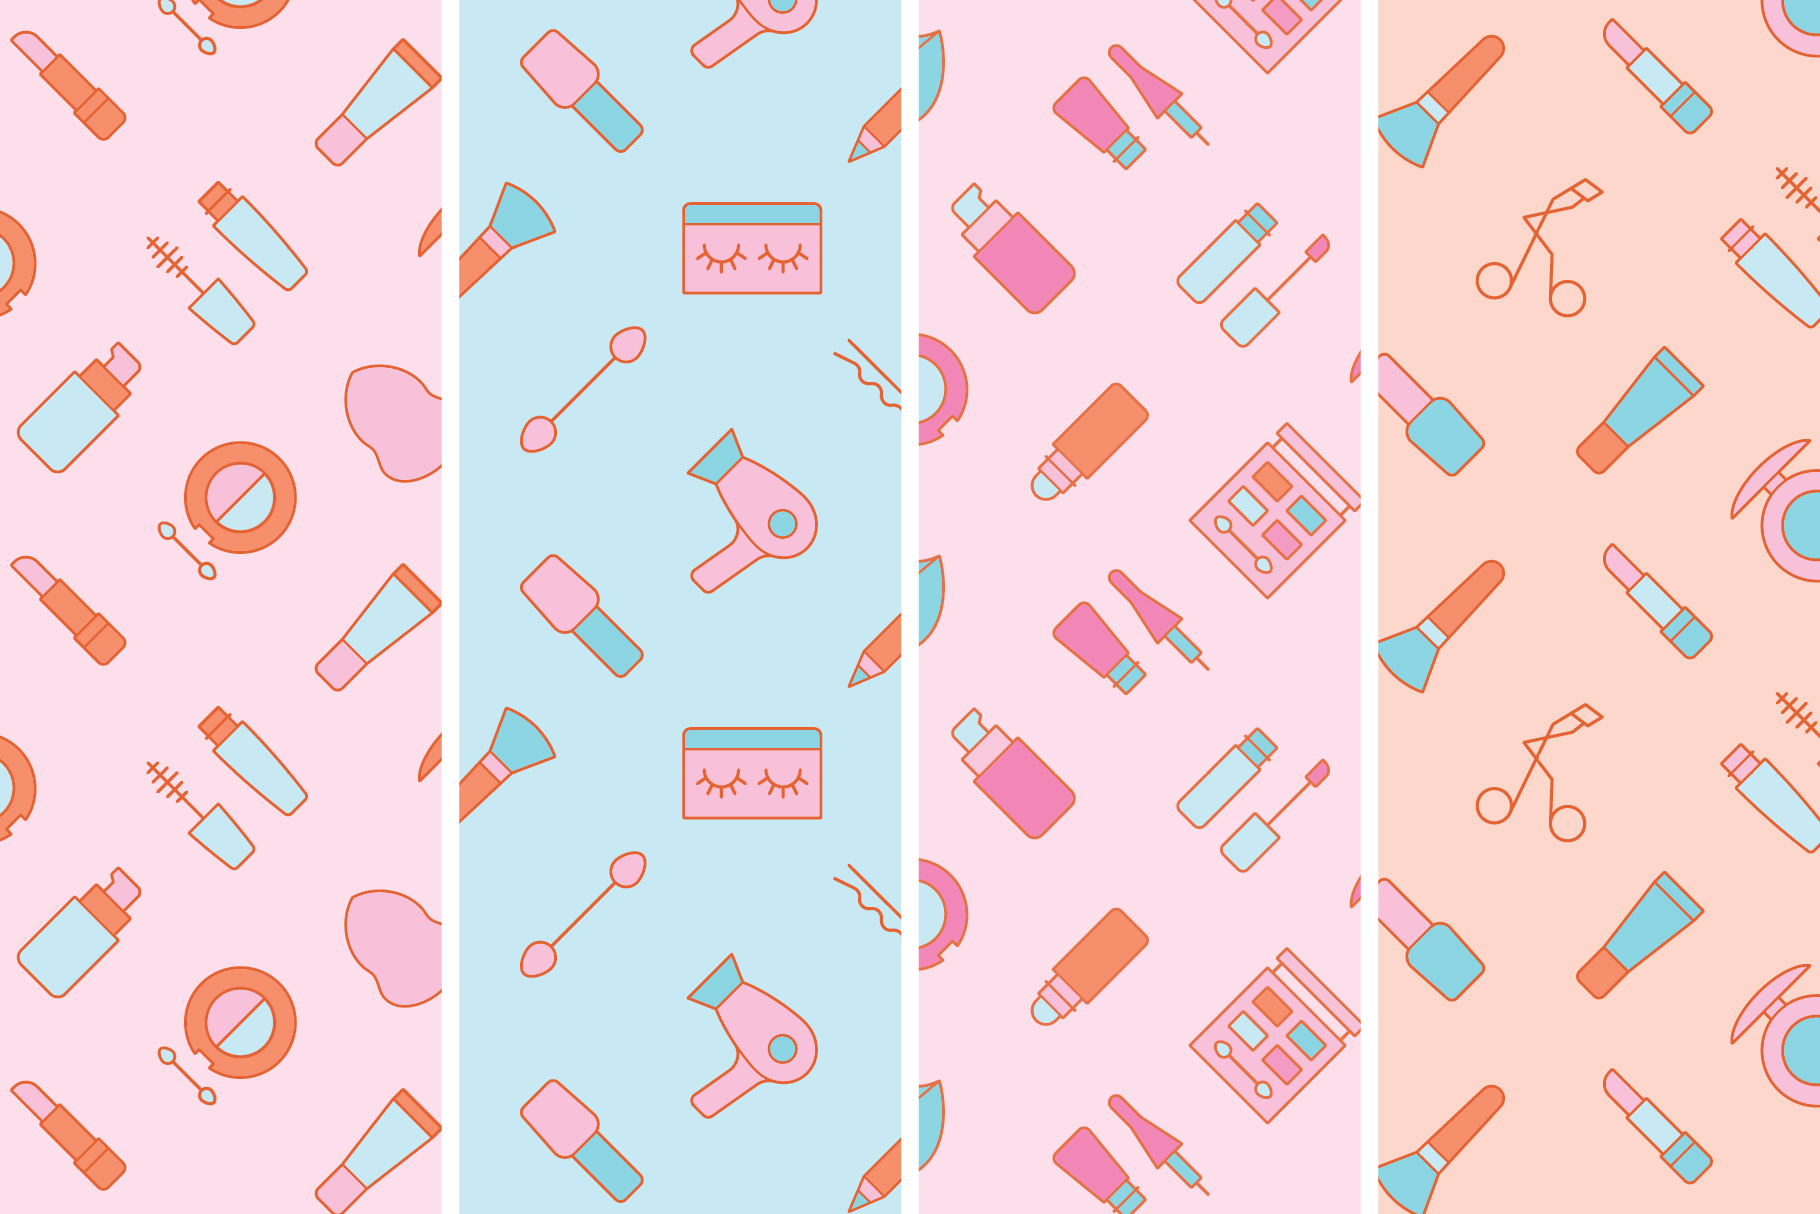 Cosmetics Seamless Patterns example image 5